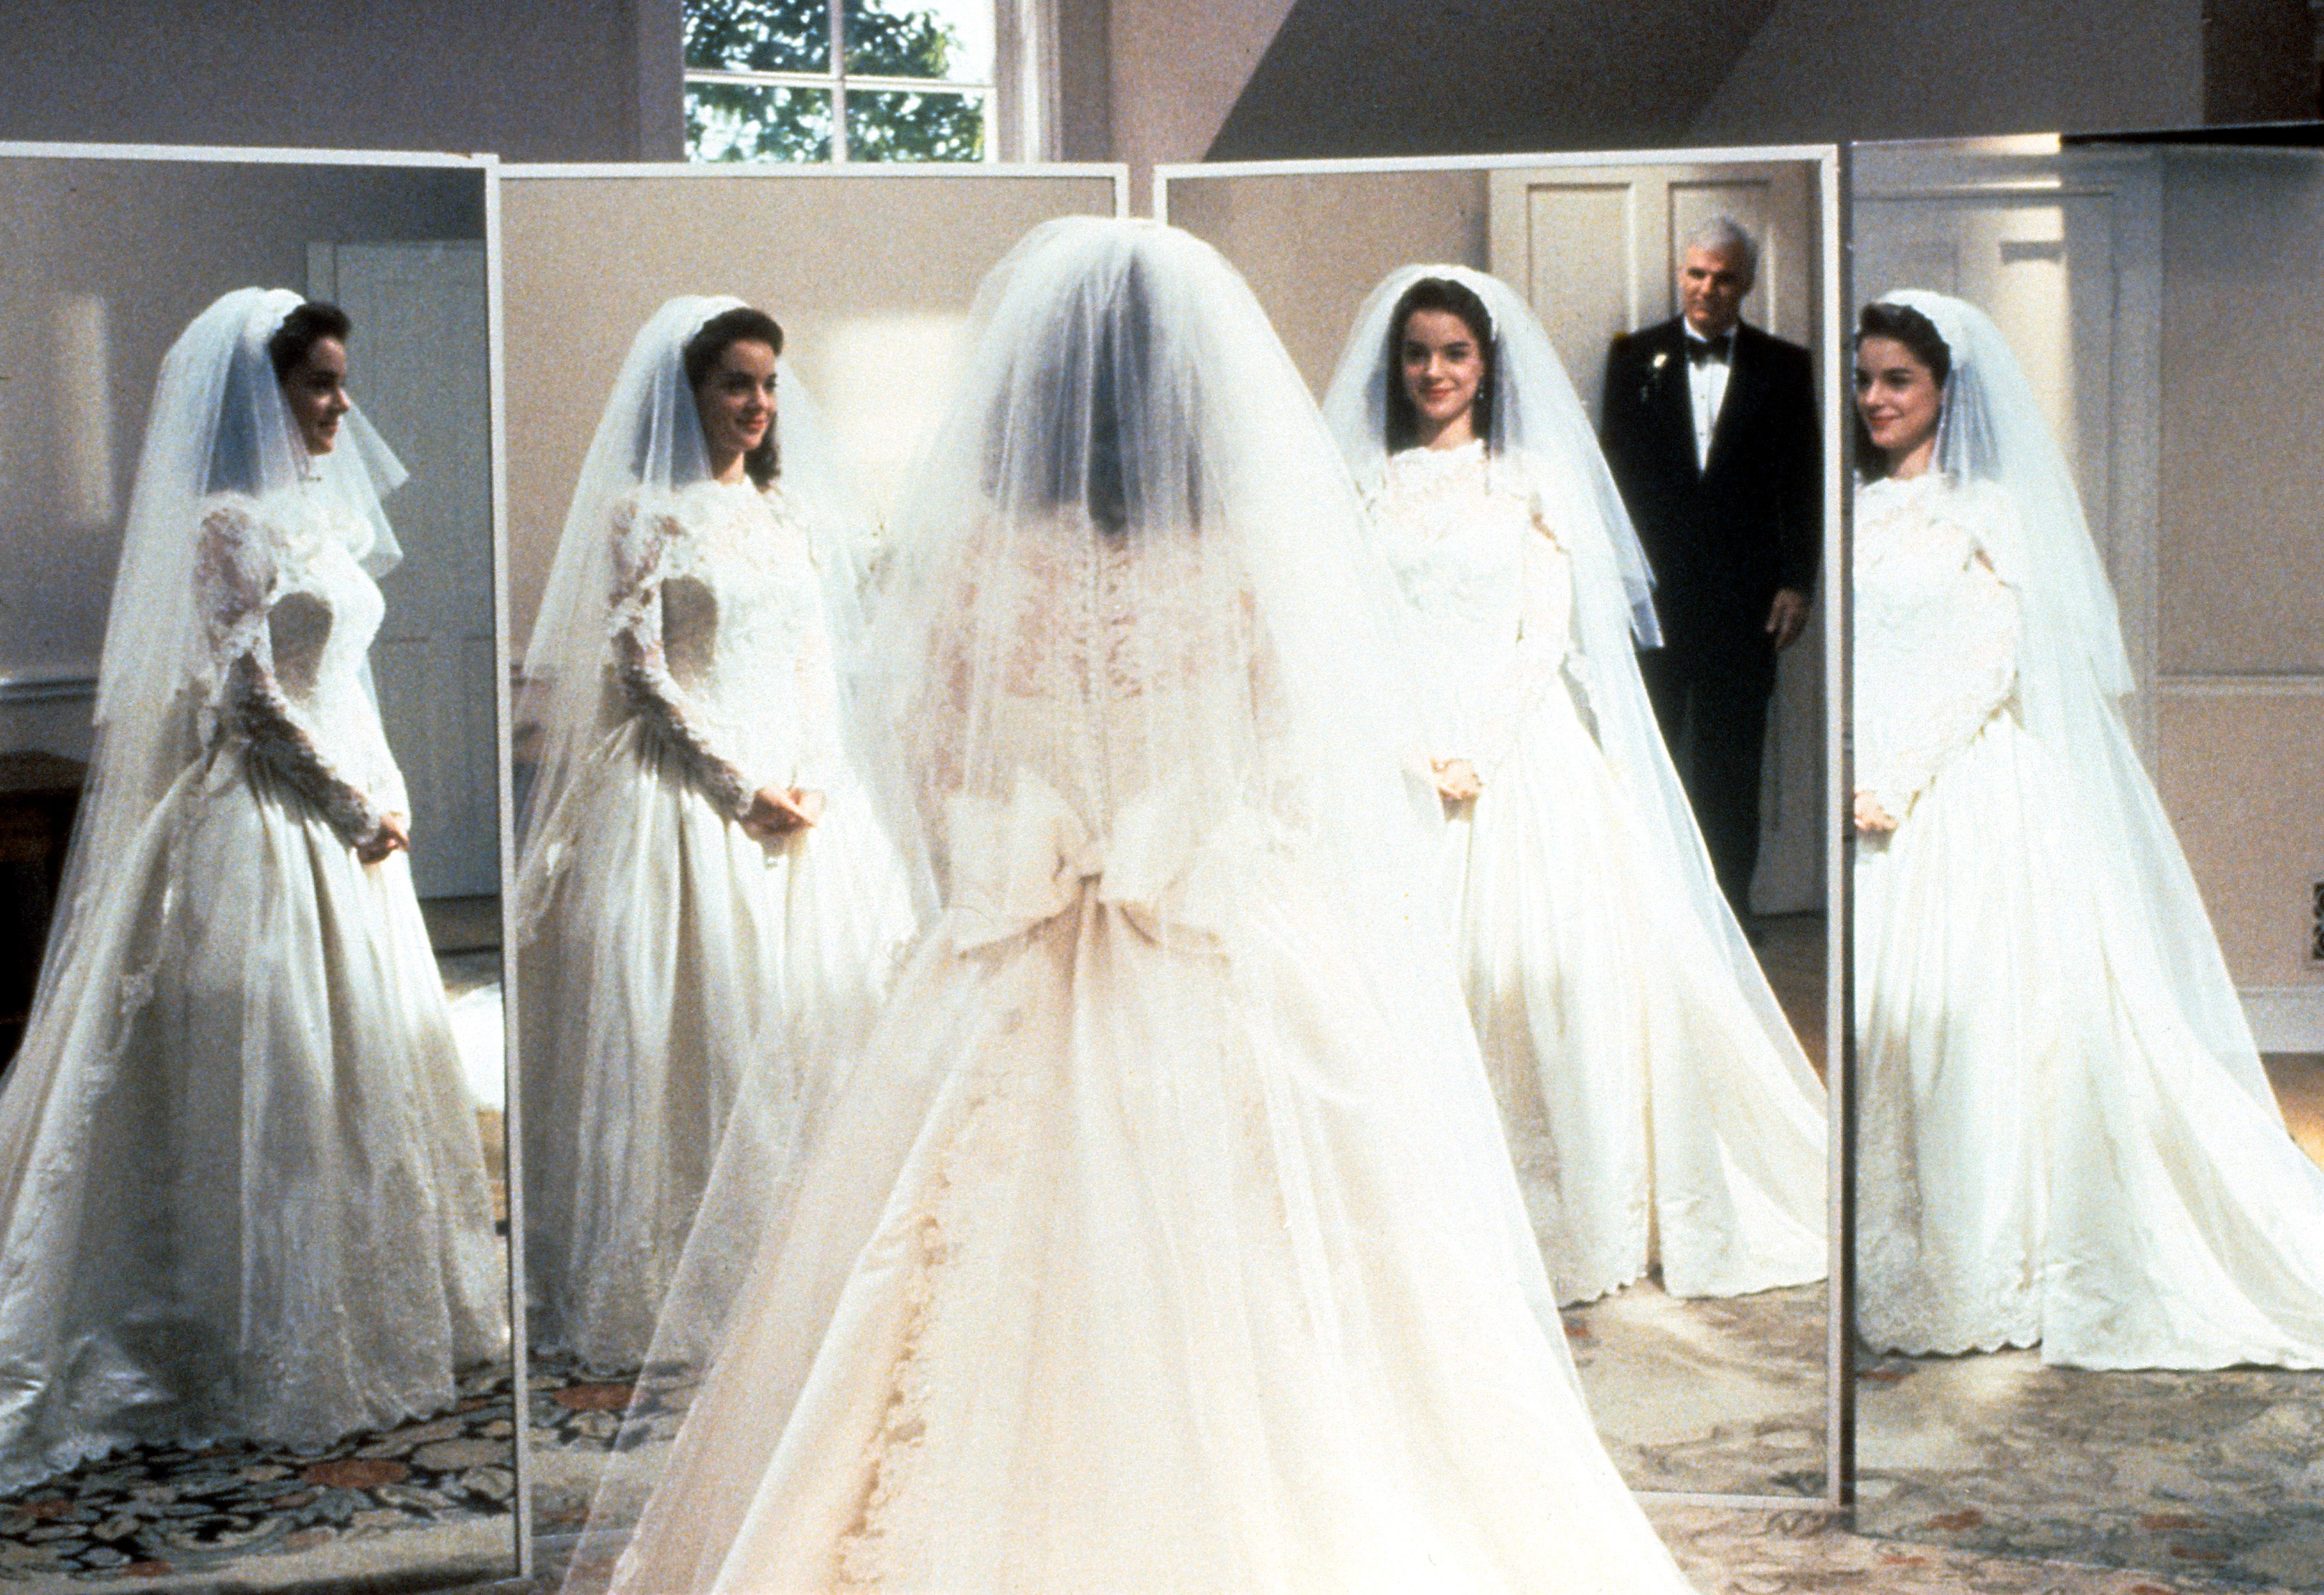 20 Most Iconic Movie Weddings Of All